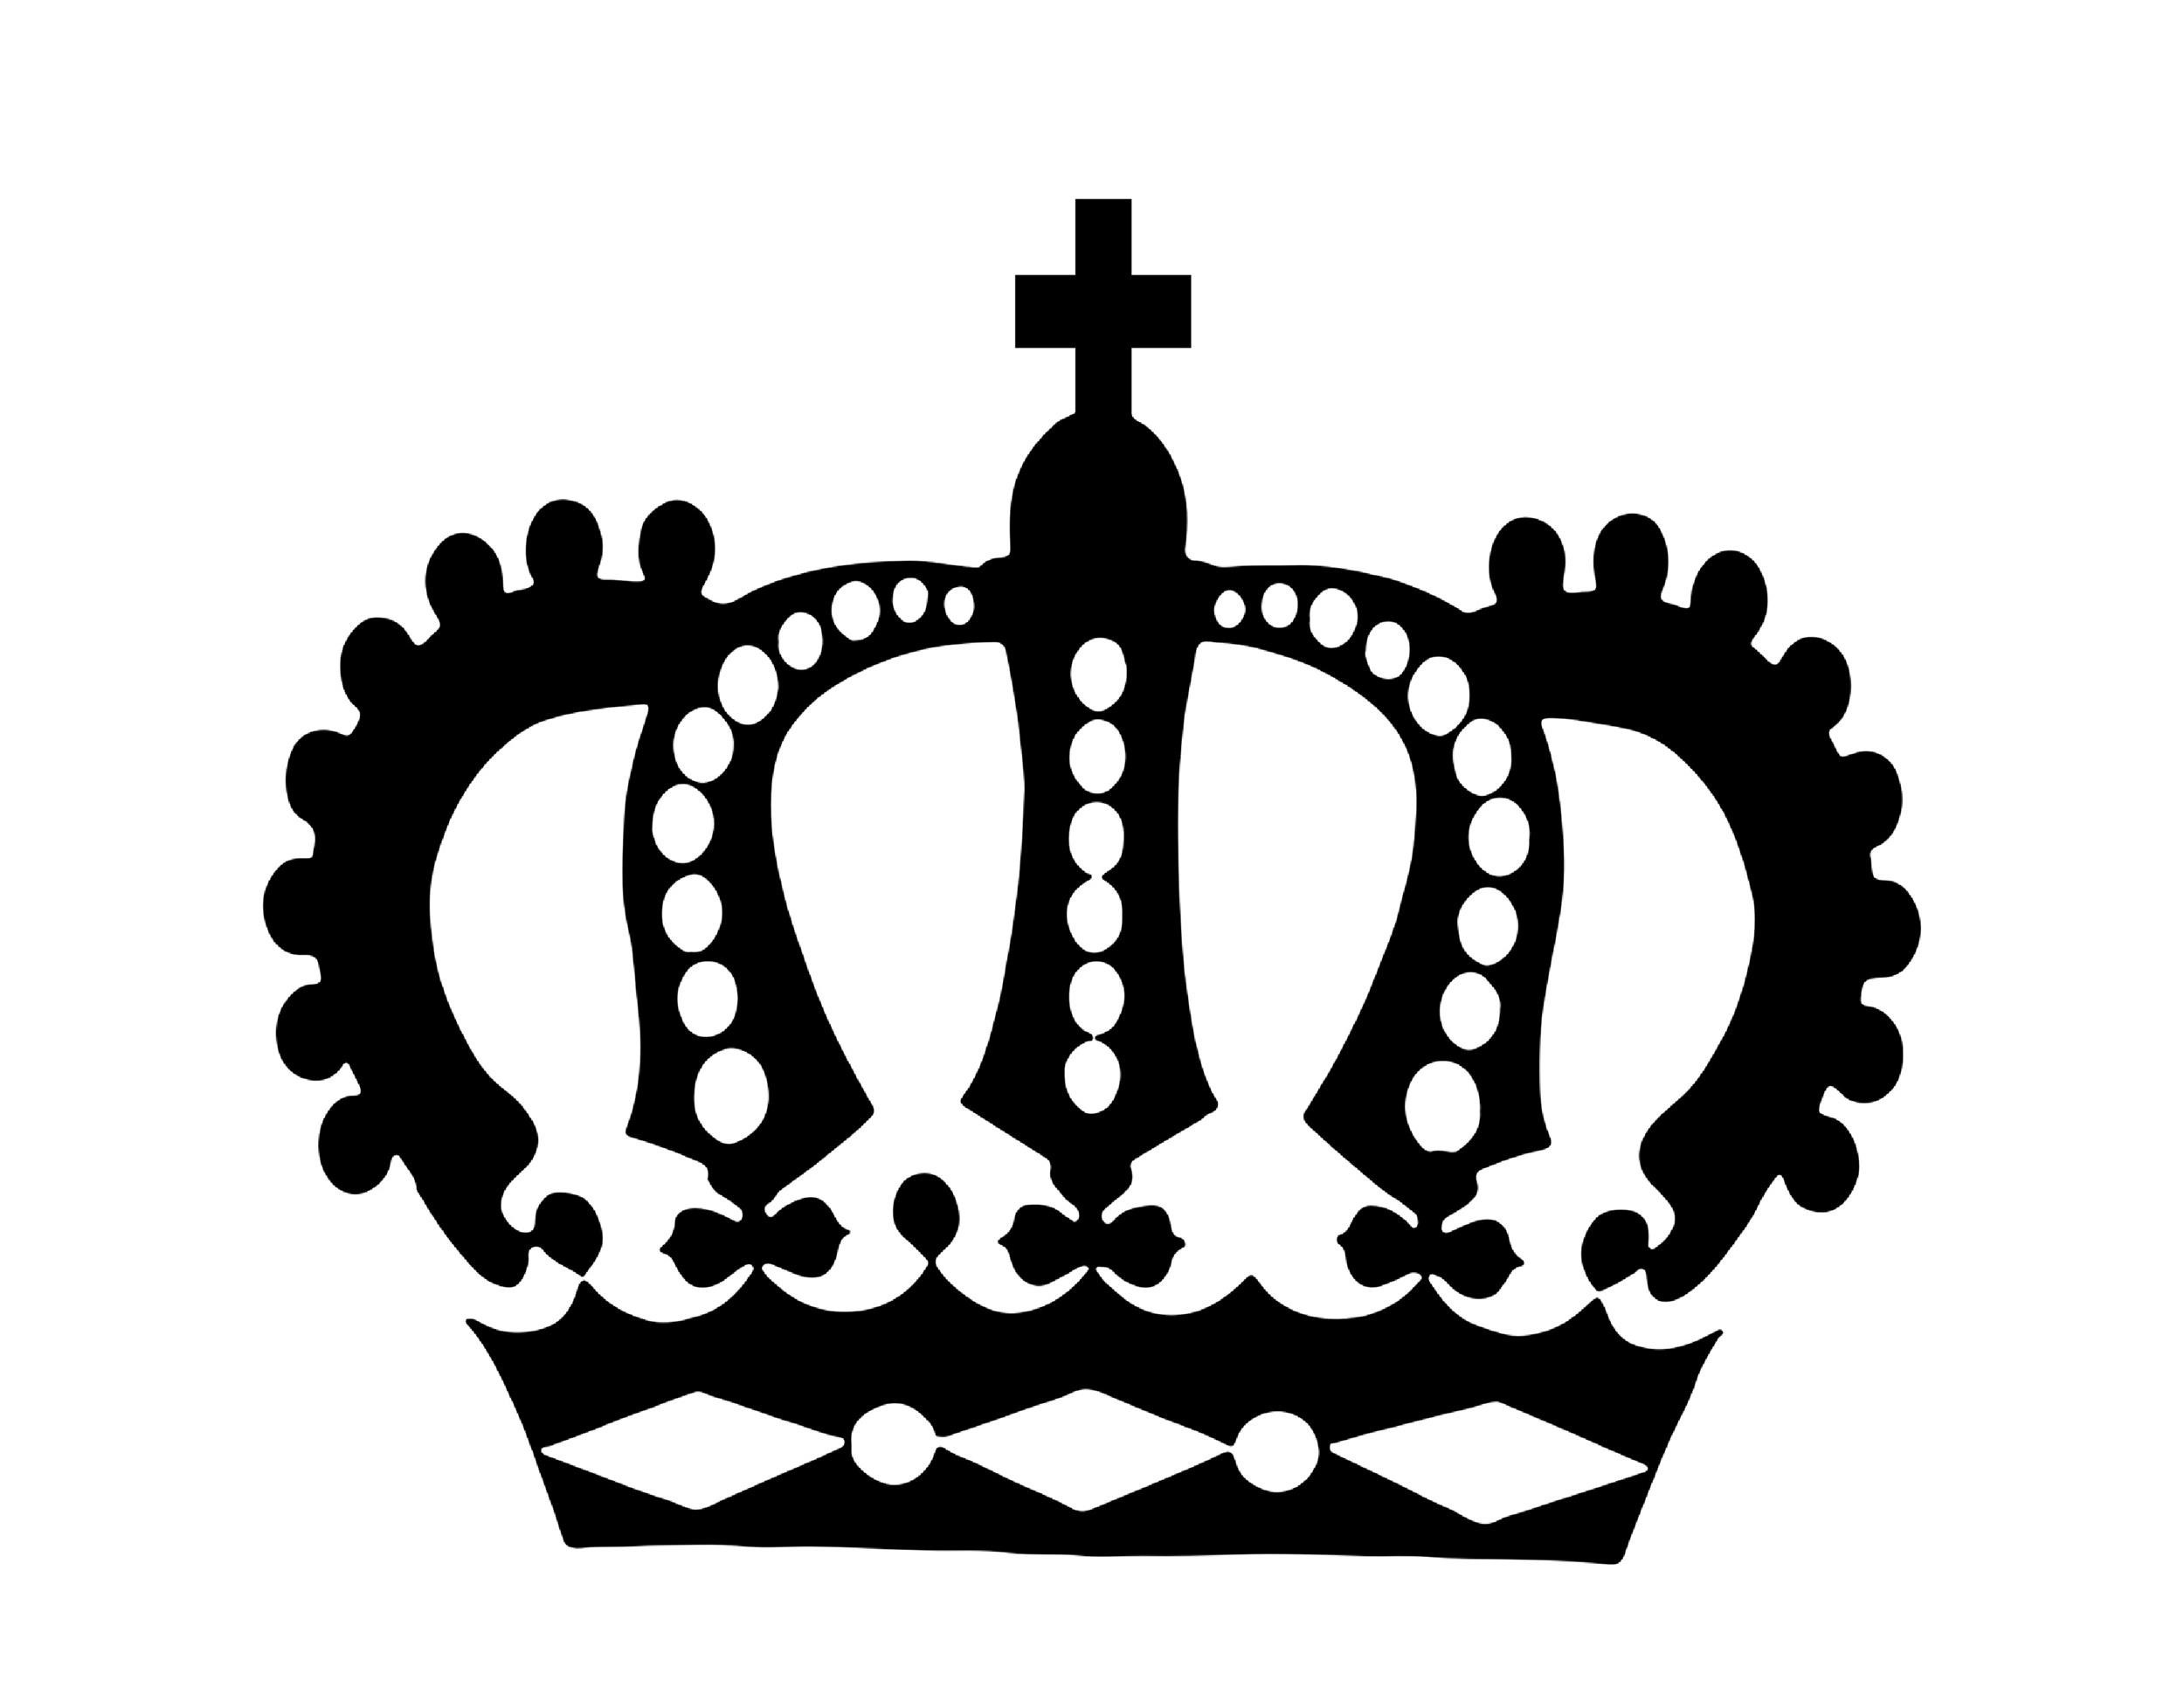 Simple king crown outline - photo#13